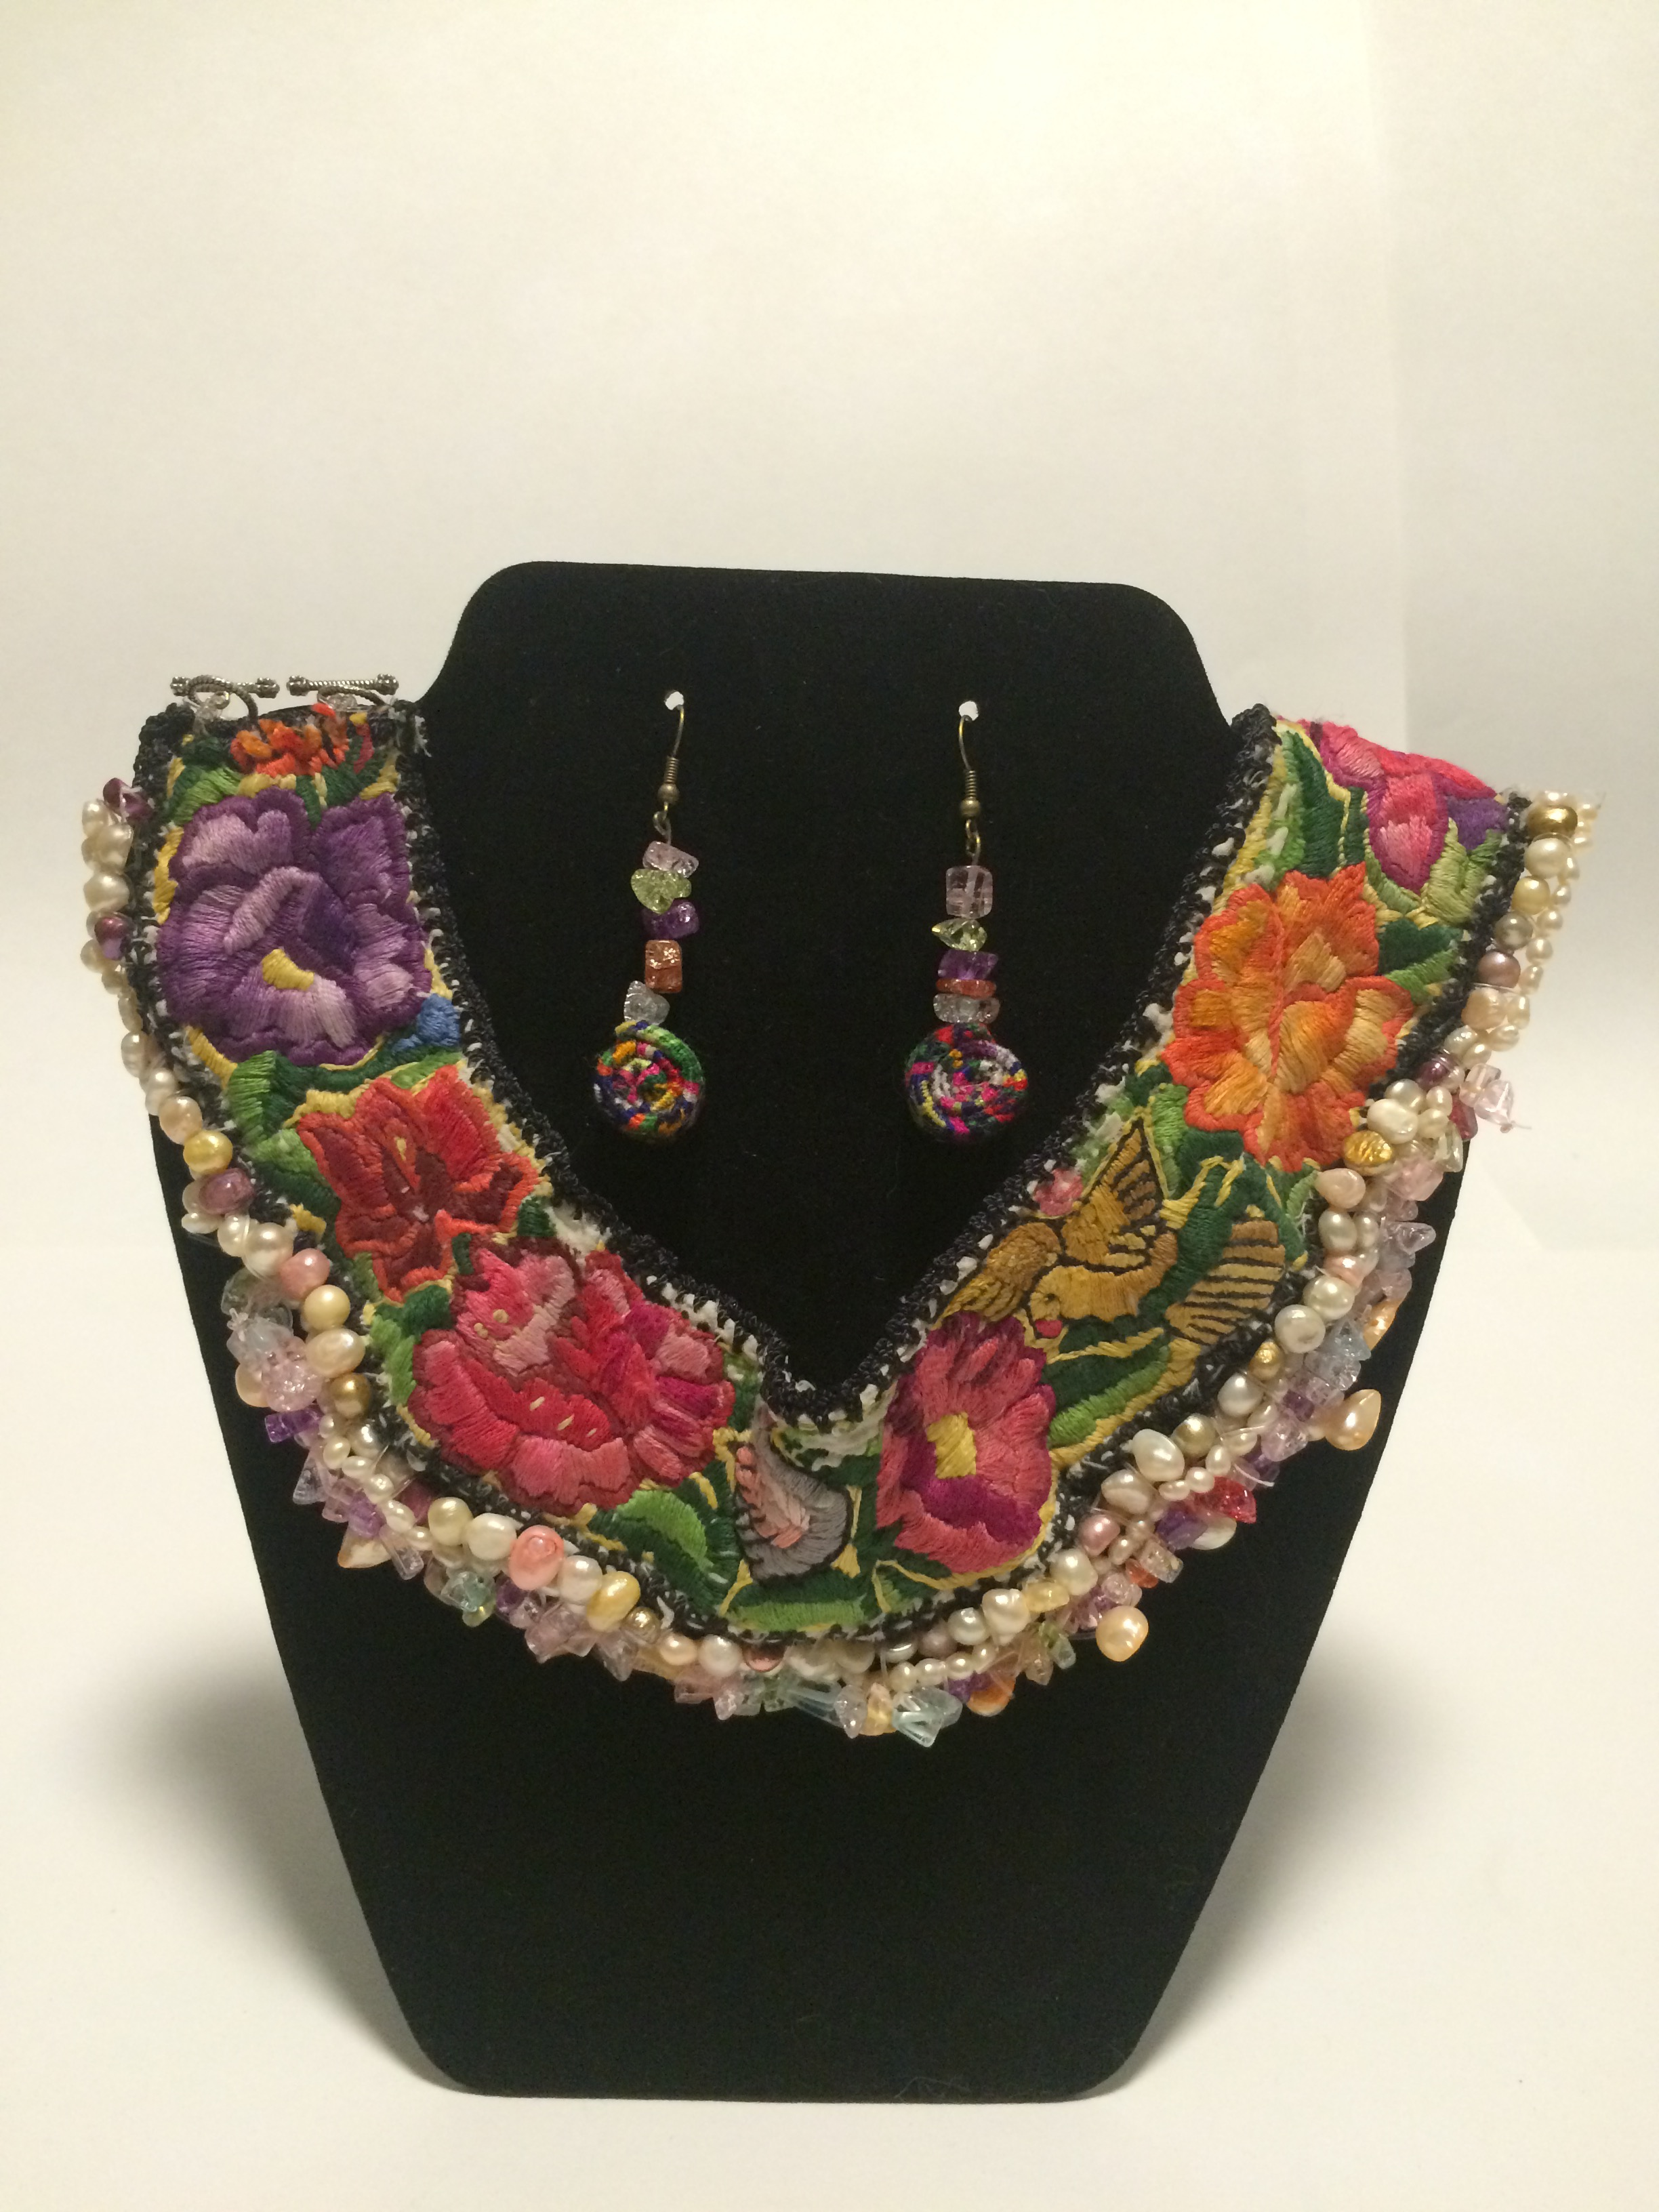 Huipil Collar Necklace and Earrings